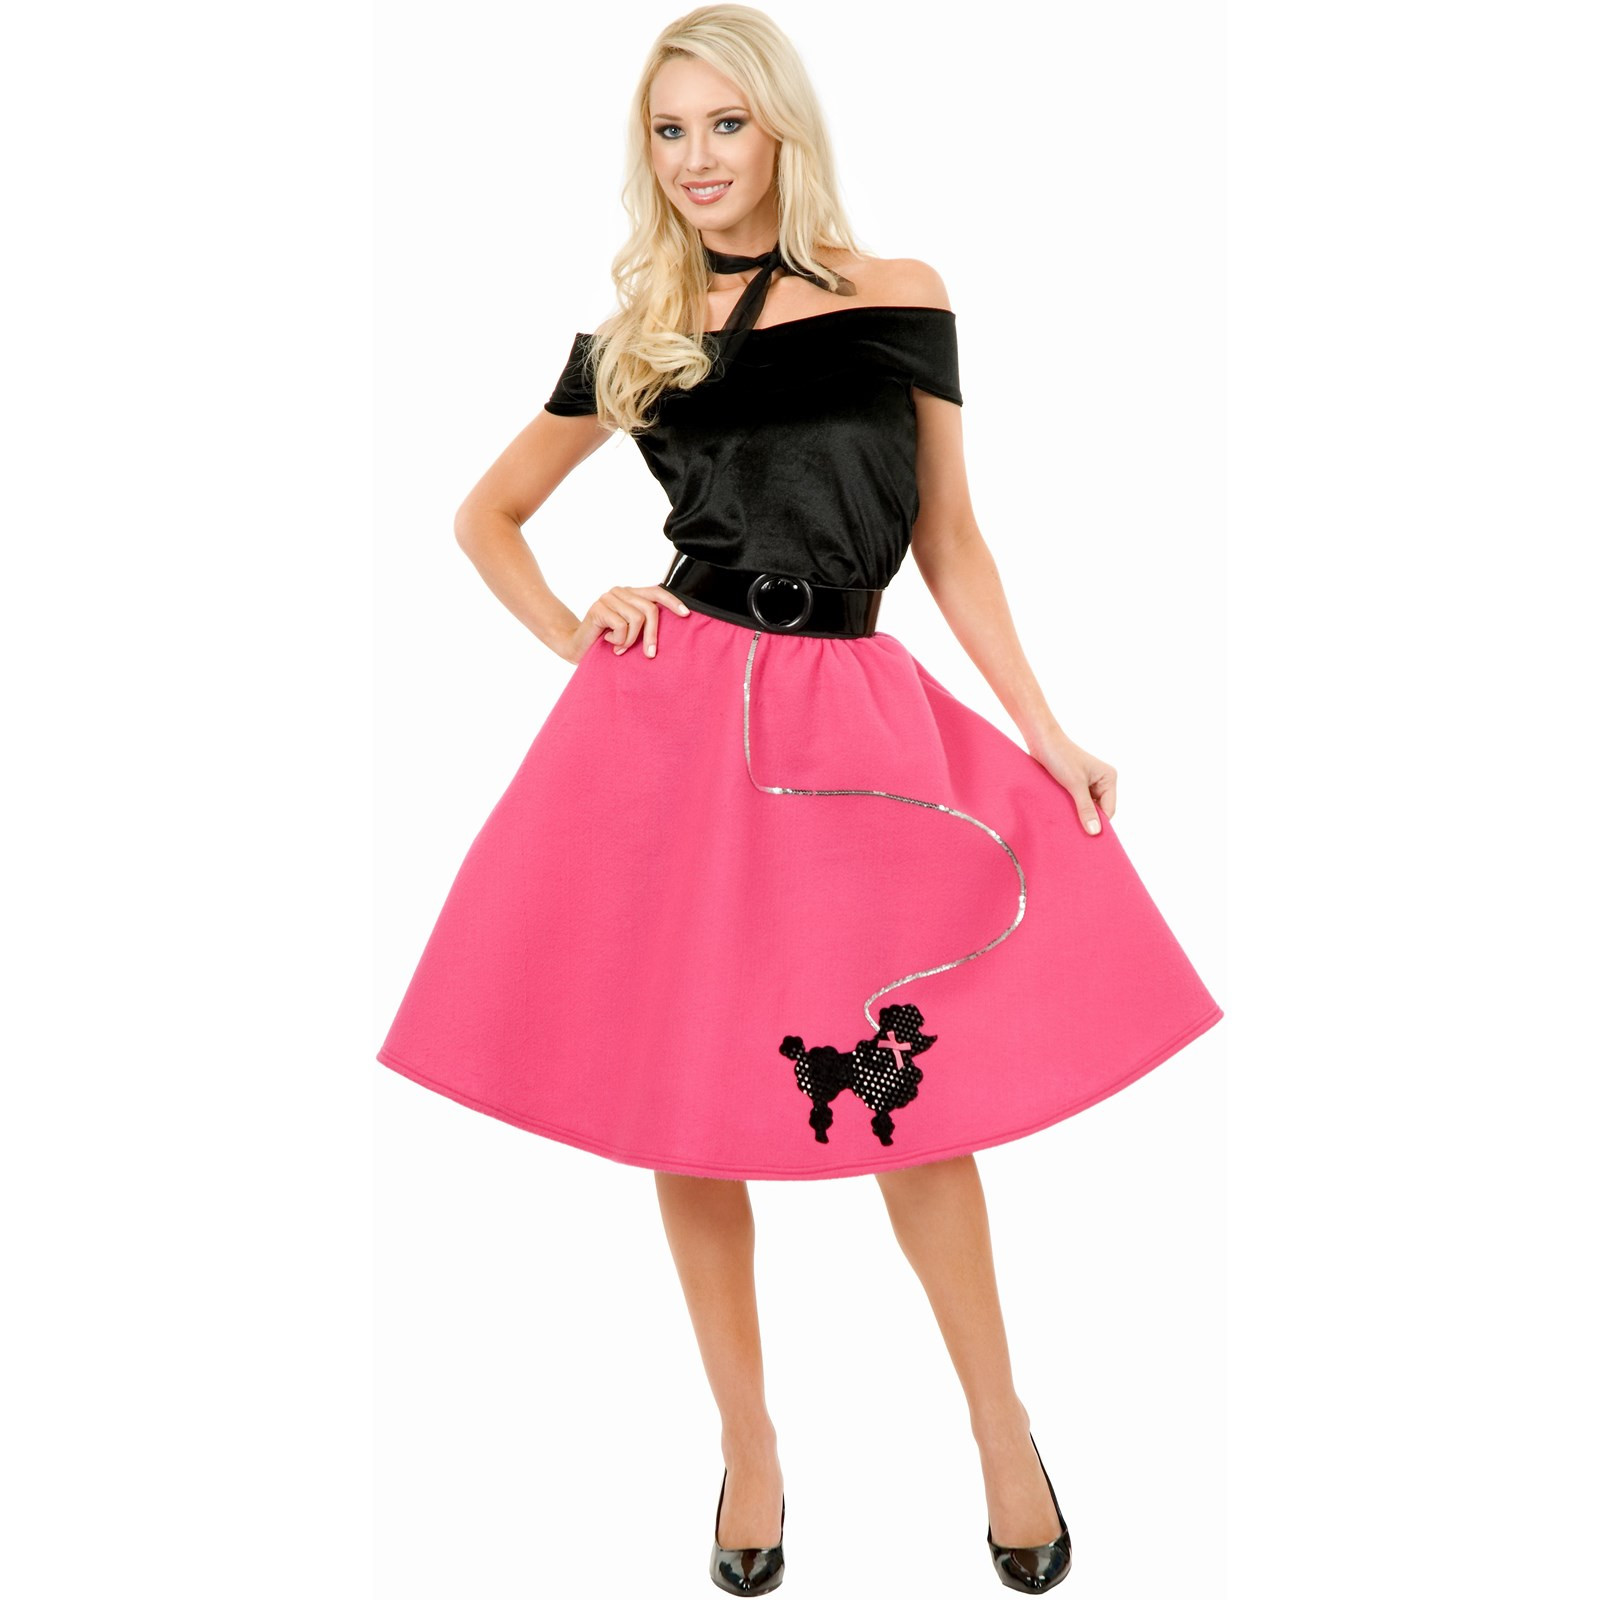 Poodle Skirt Top Scarf Adult Costume